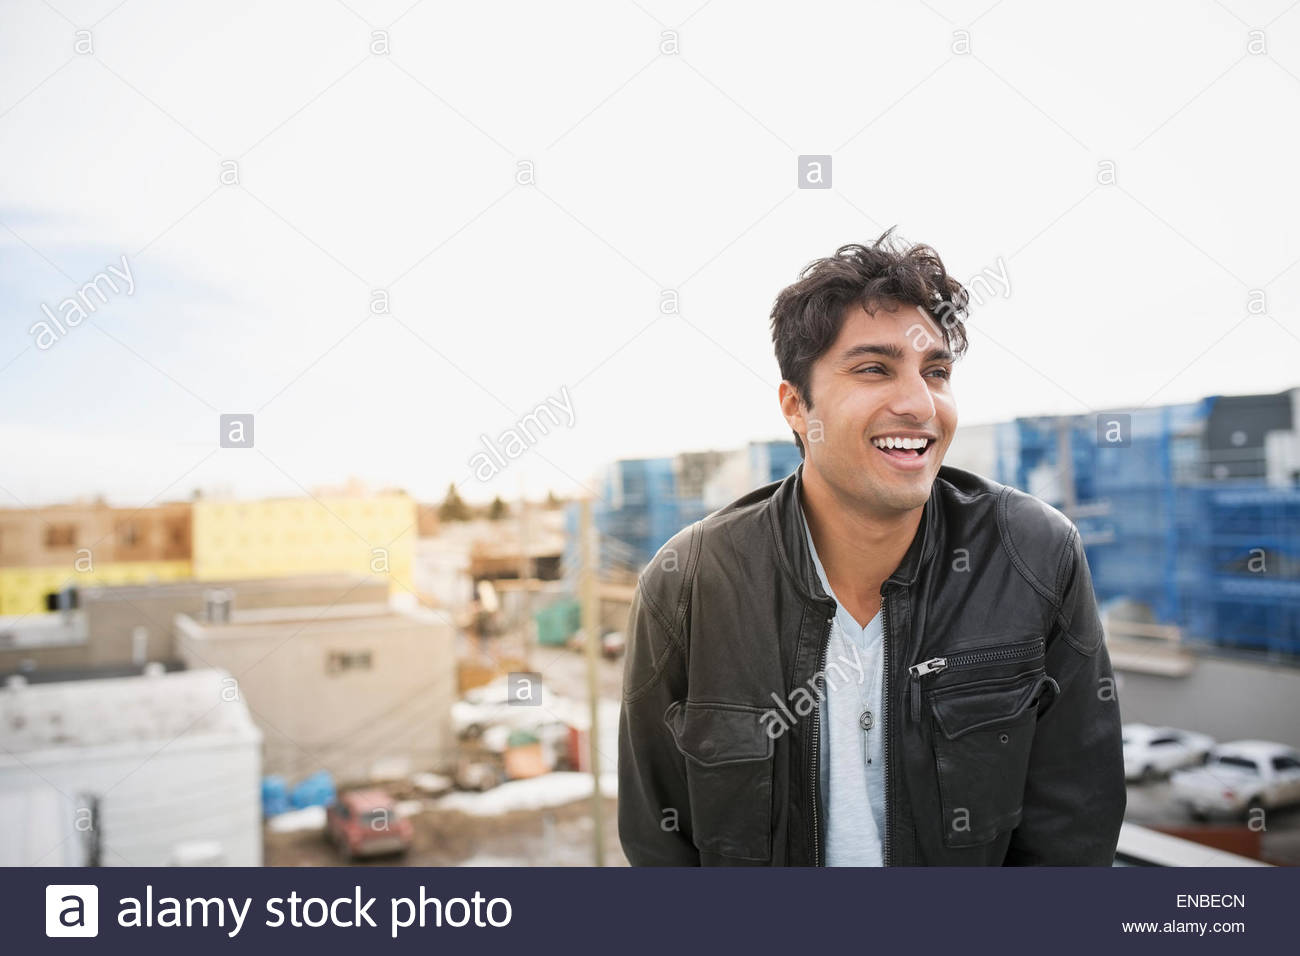 Laughing man on urban rooftop - Stock Image